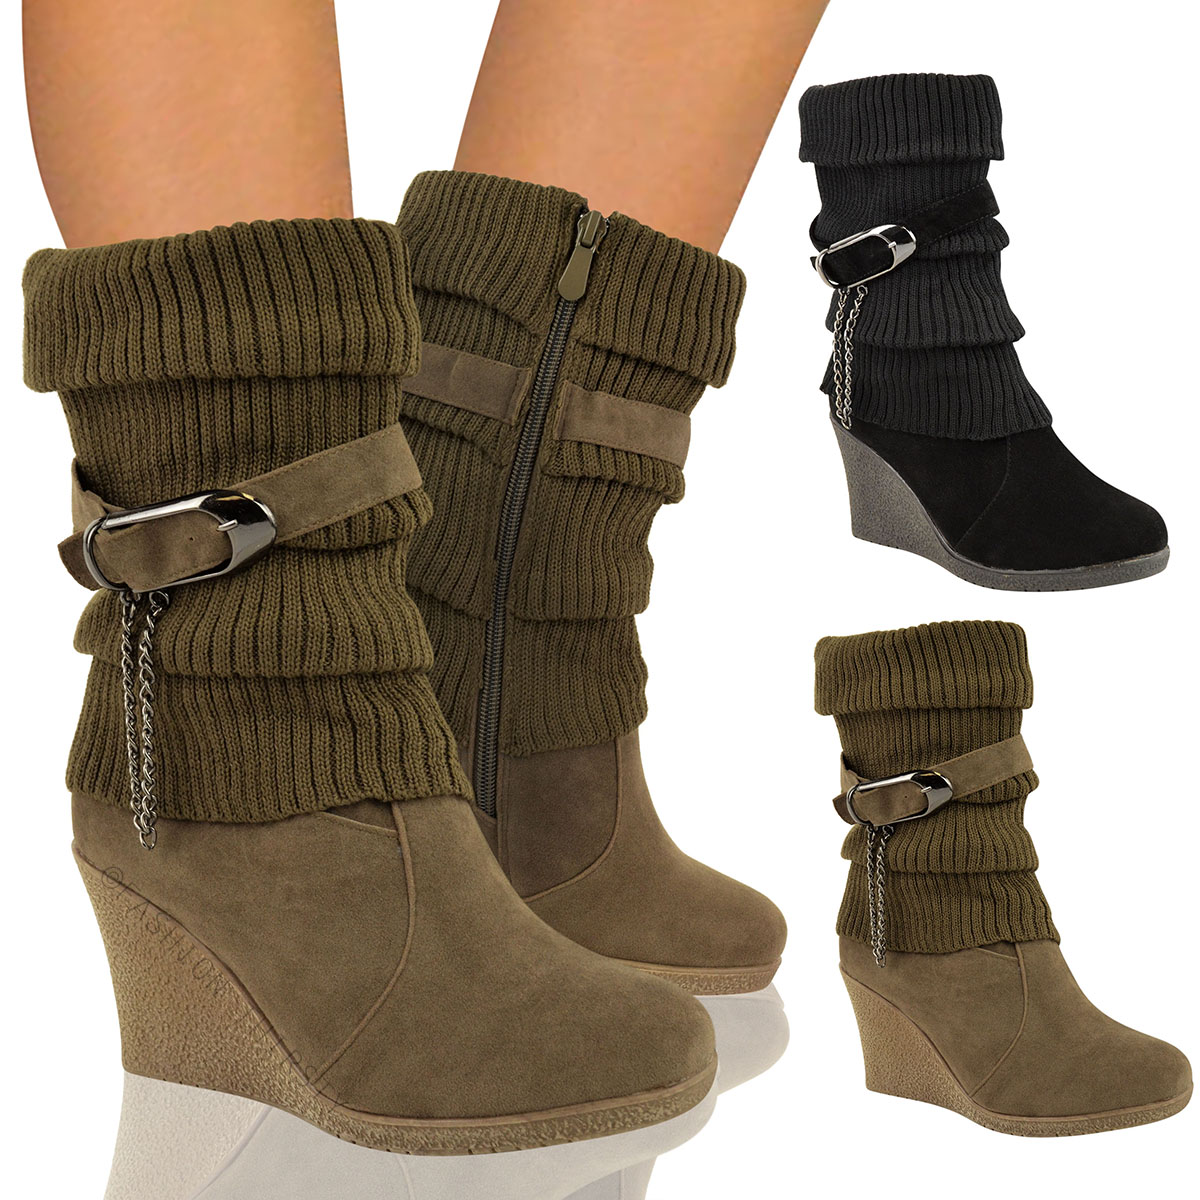 Womens Wedge Heel Boots S7LT4Hun